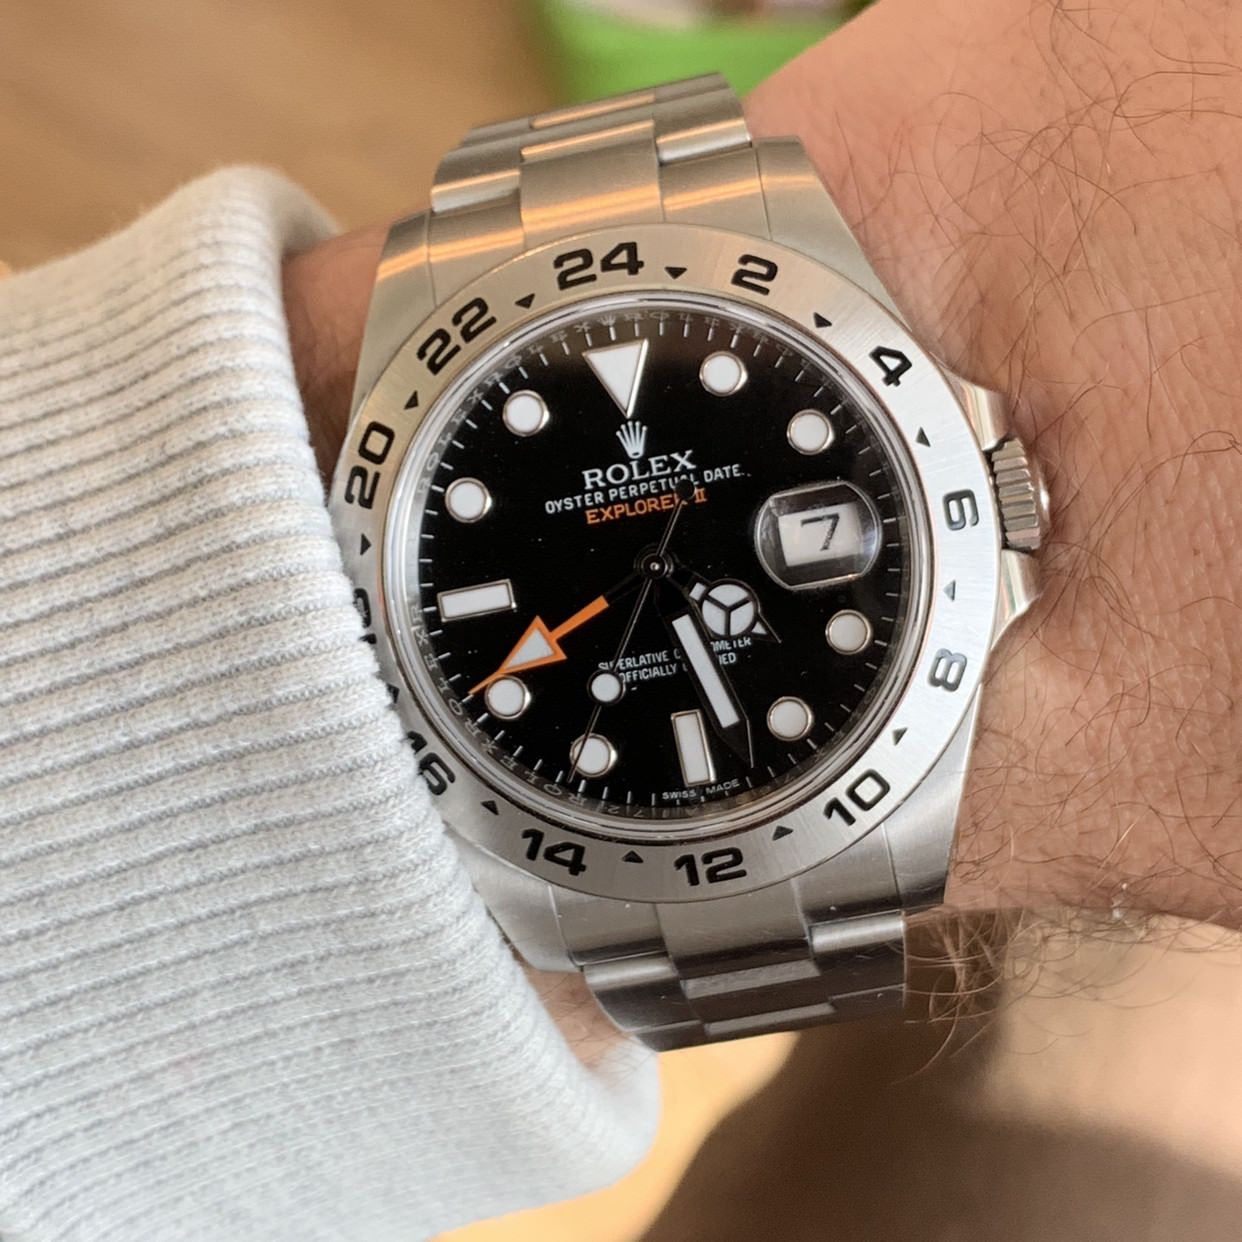 [Rolex] True Toolwatch. (With images) Rolex, Rolex